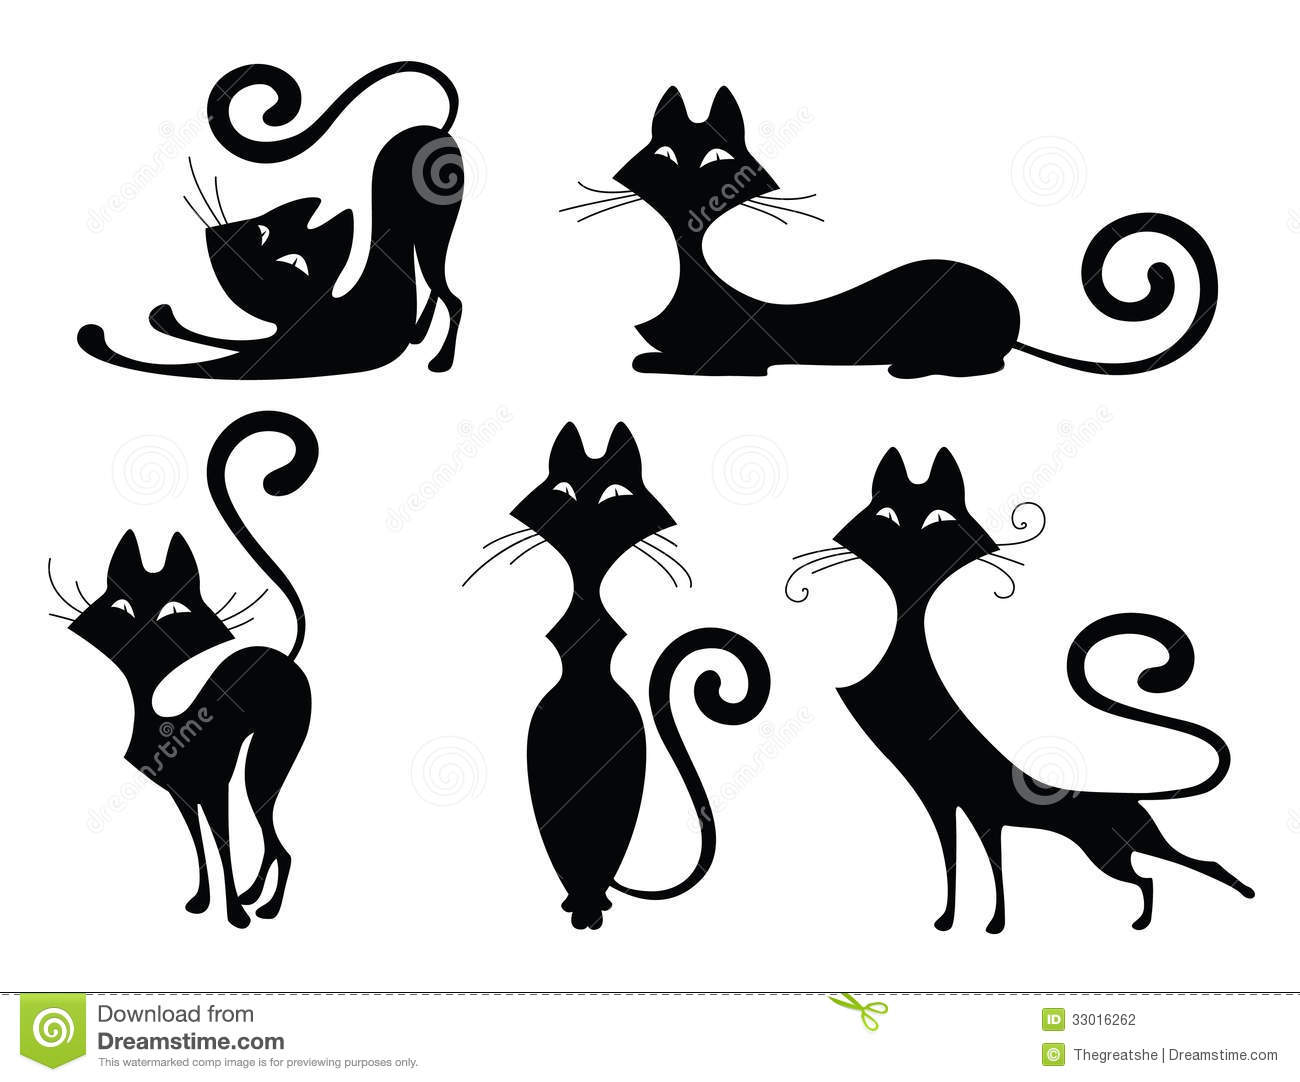 Ensemble de silhouettes de chat photographie stock image - Dessin silhouette chat ...